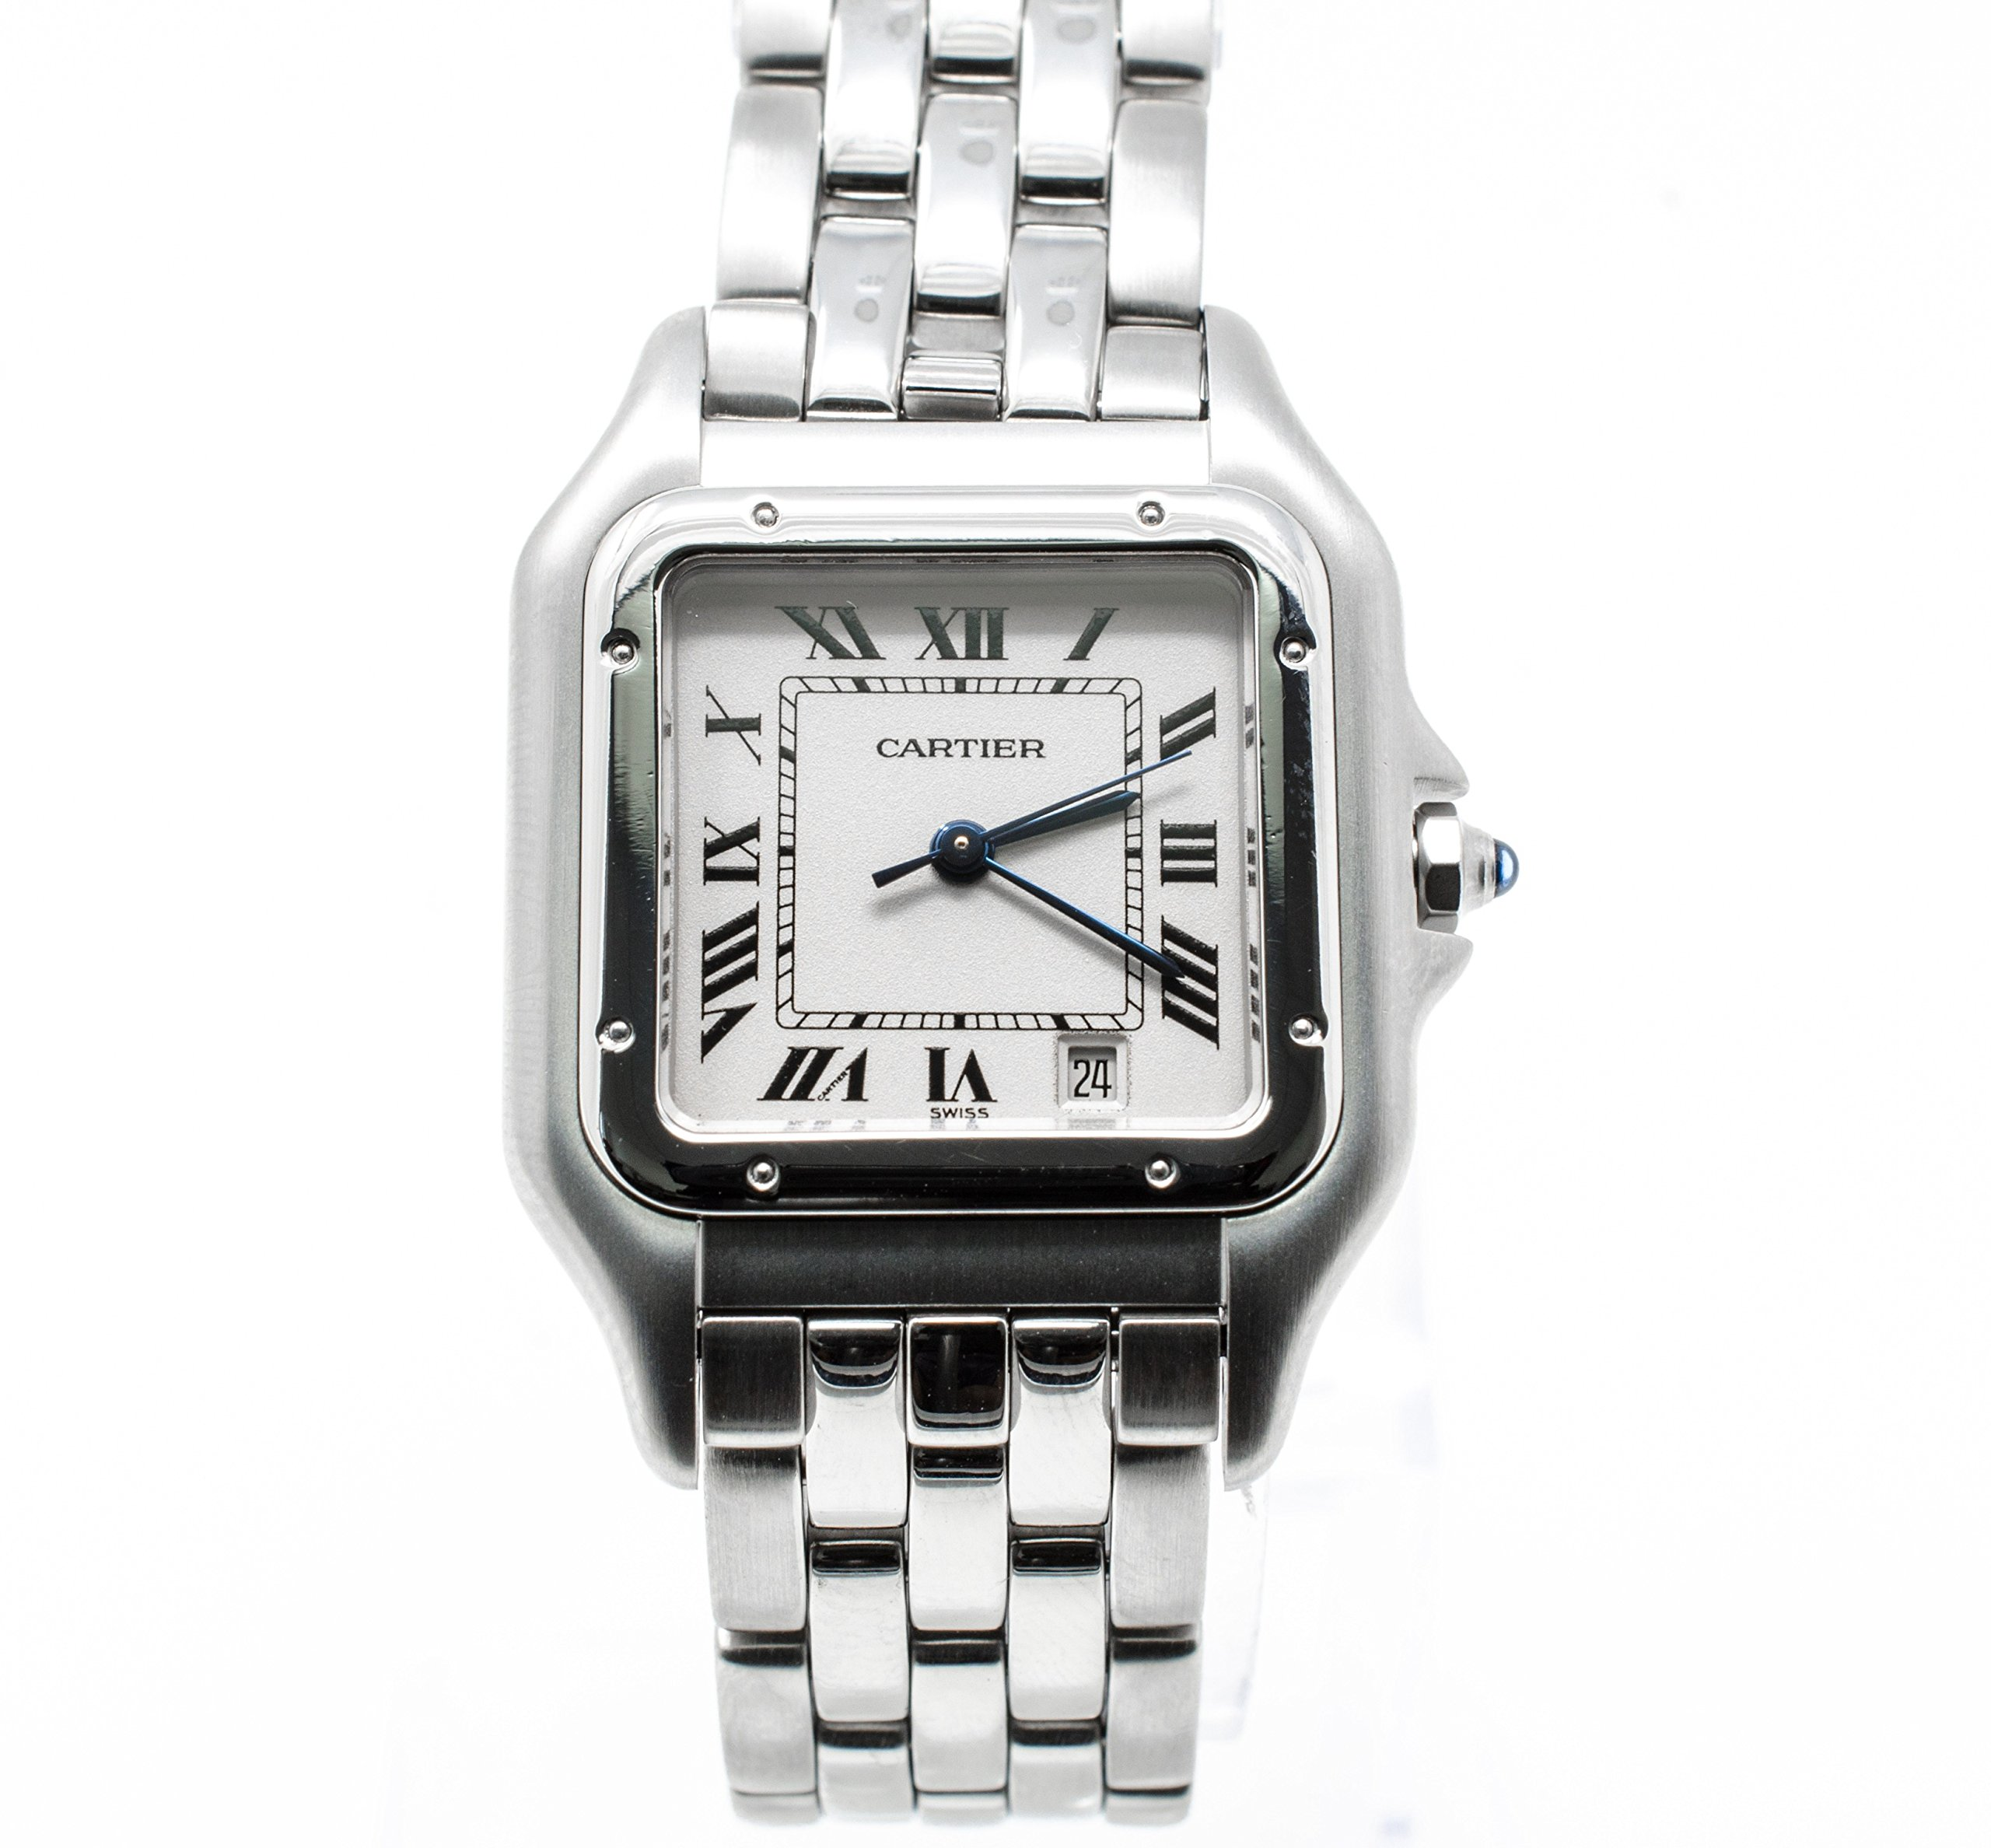 Cartier Panthere quartz womens Watch 1310 (Certified Pre-owned)